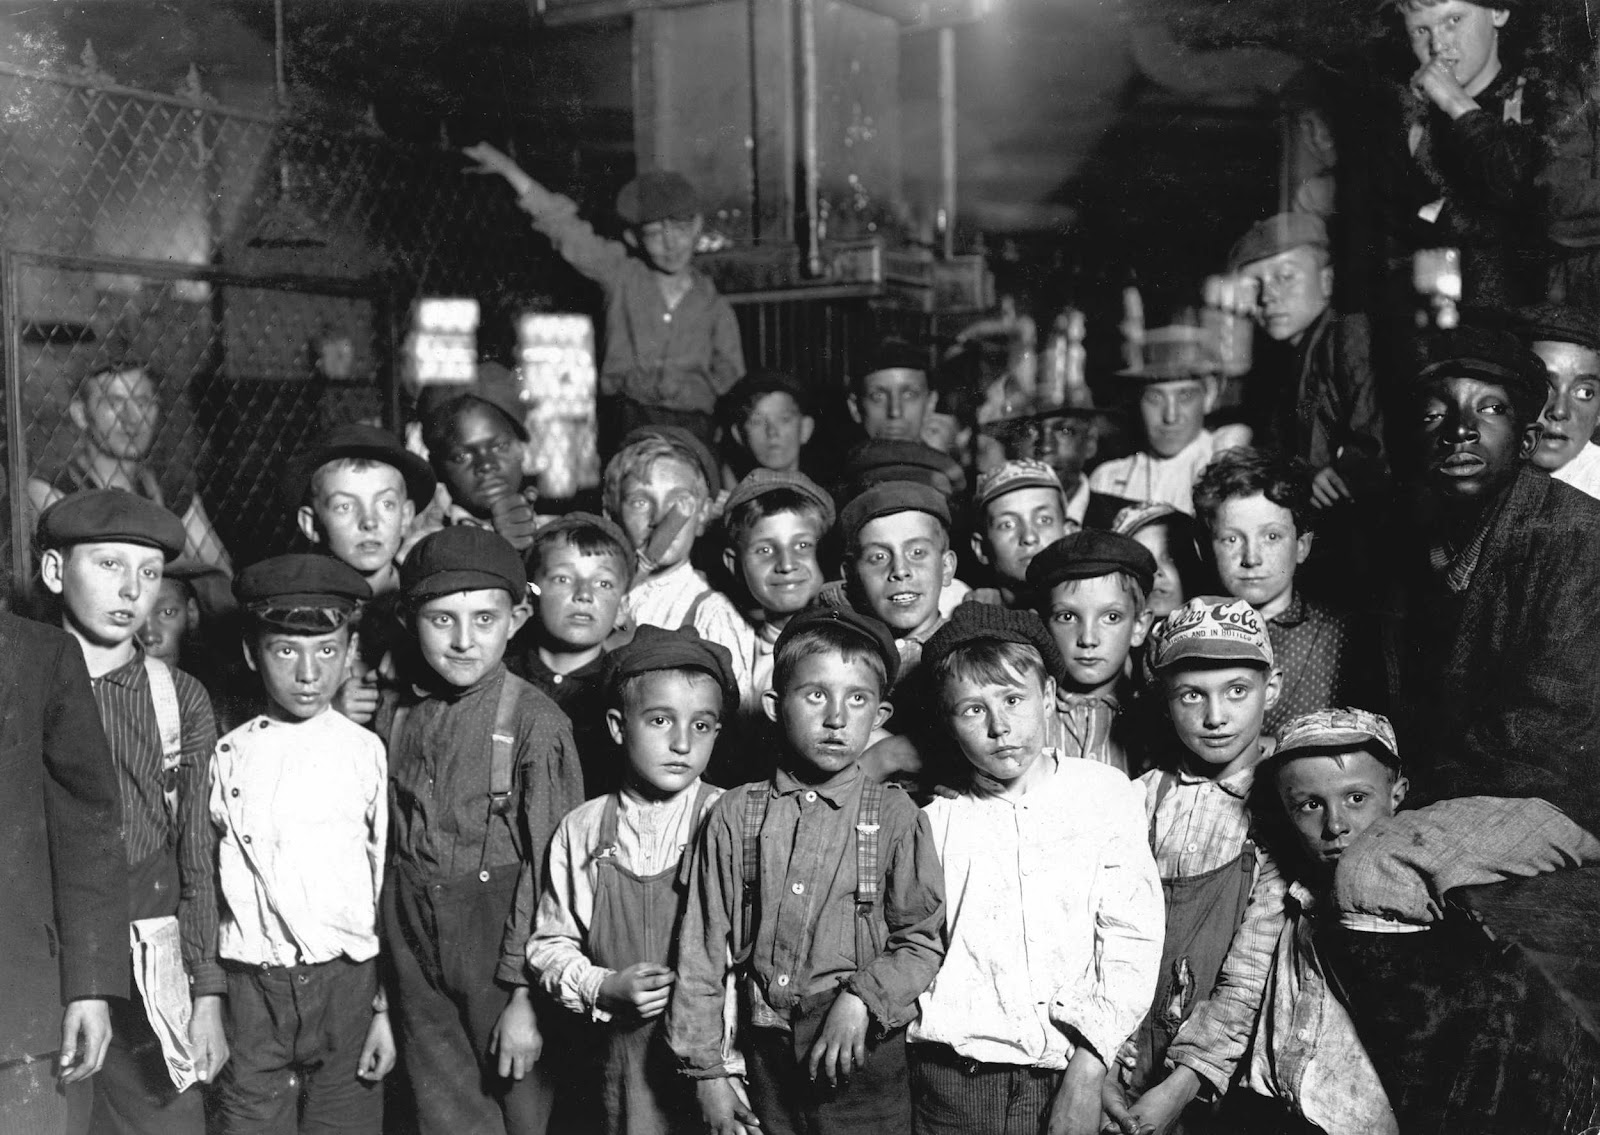 Lewis Hine - Indianapolis Newsboys waiting for the Base Ball edition, in a Newspaper office. Bad environment. Tough negroes etc., 1908